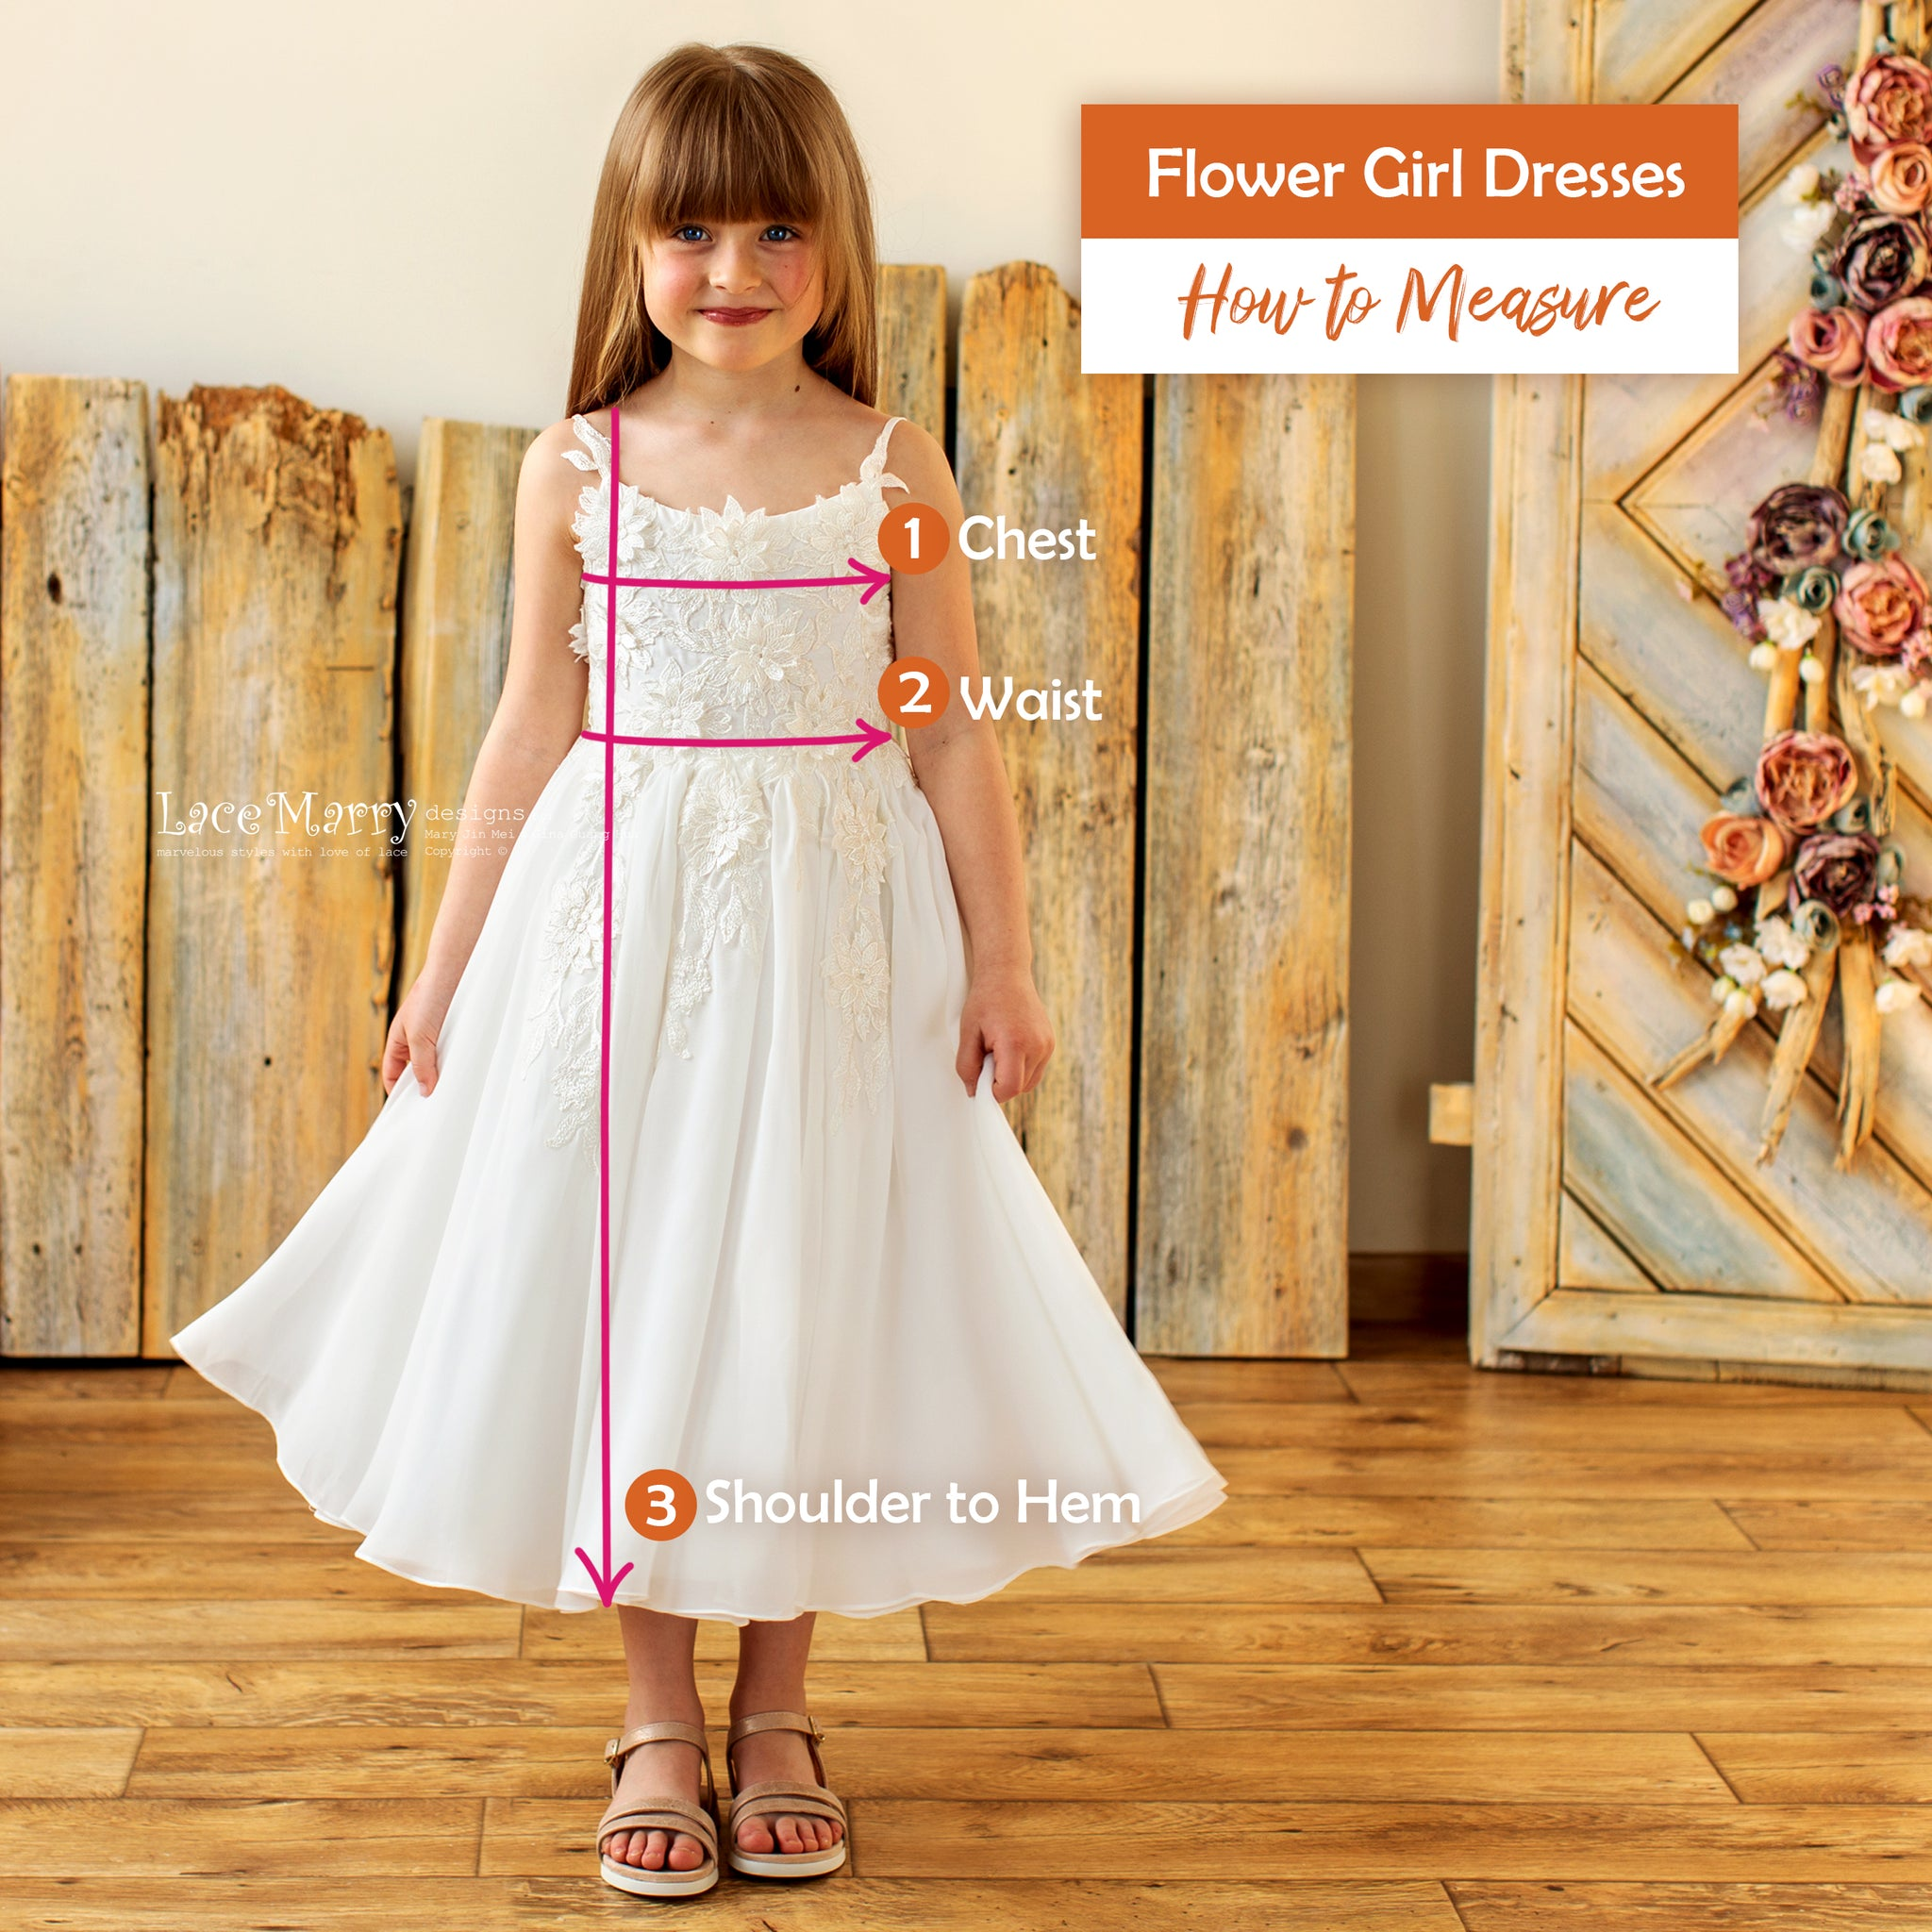 Flower Girl How to Measure